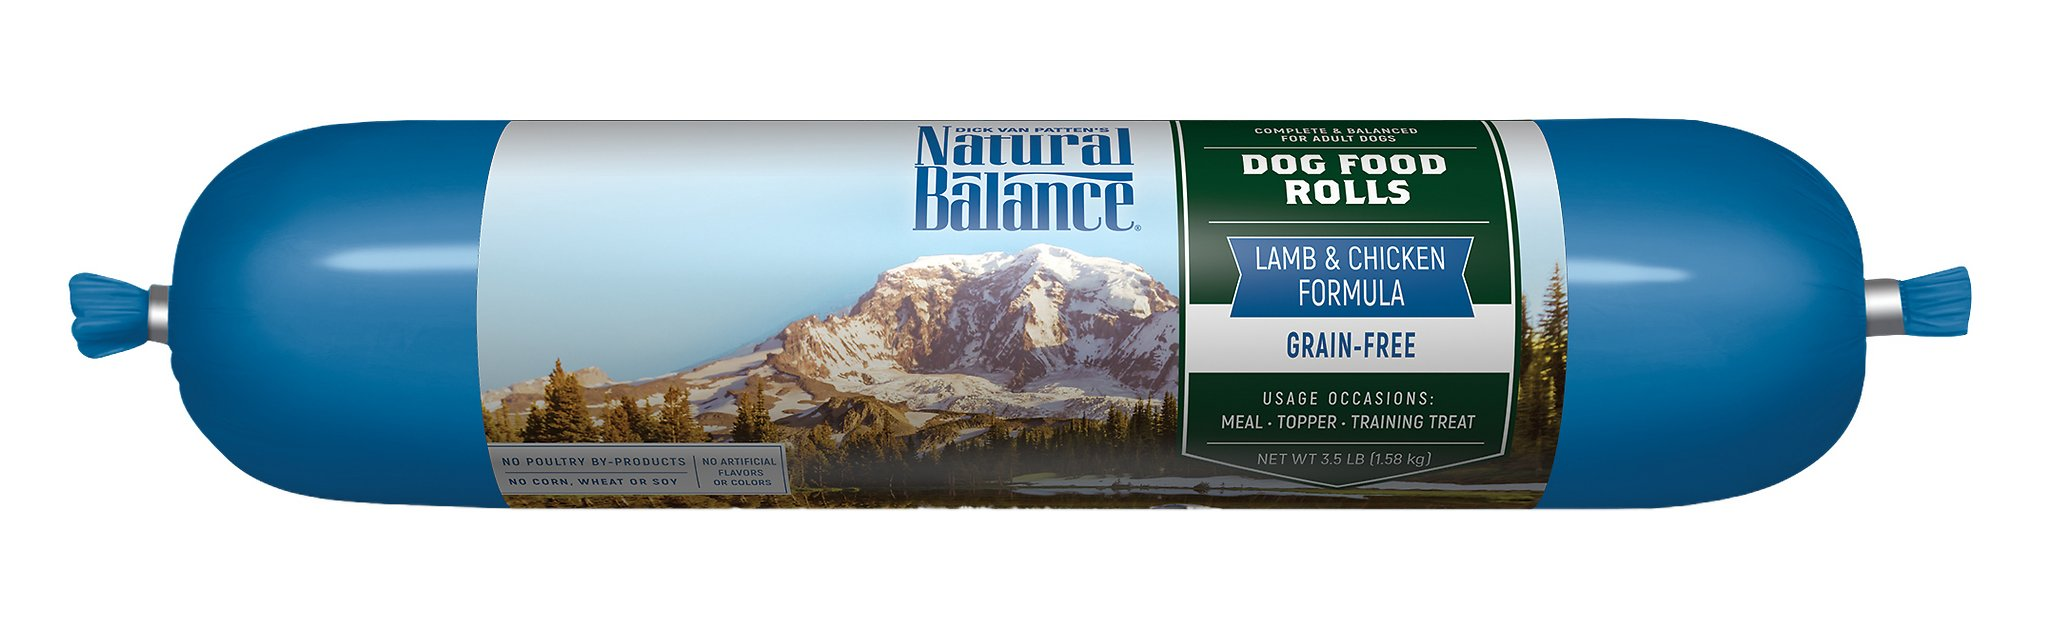 Natural Balance Dog Food Roll Lamb Formula Reviews